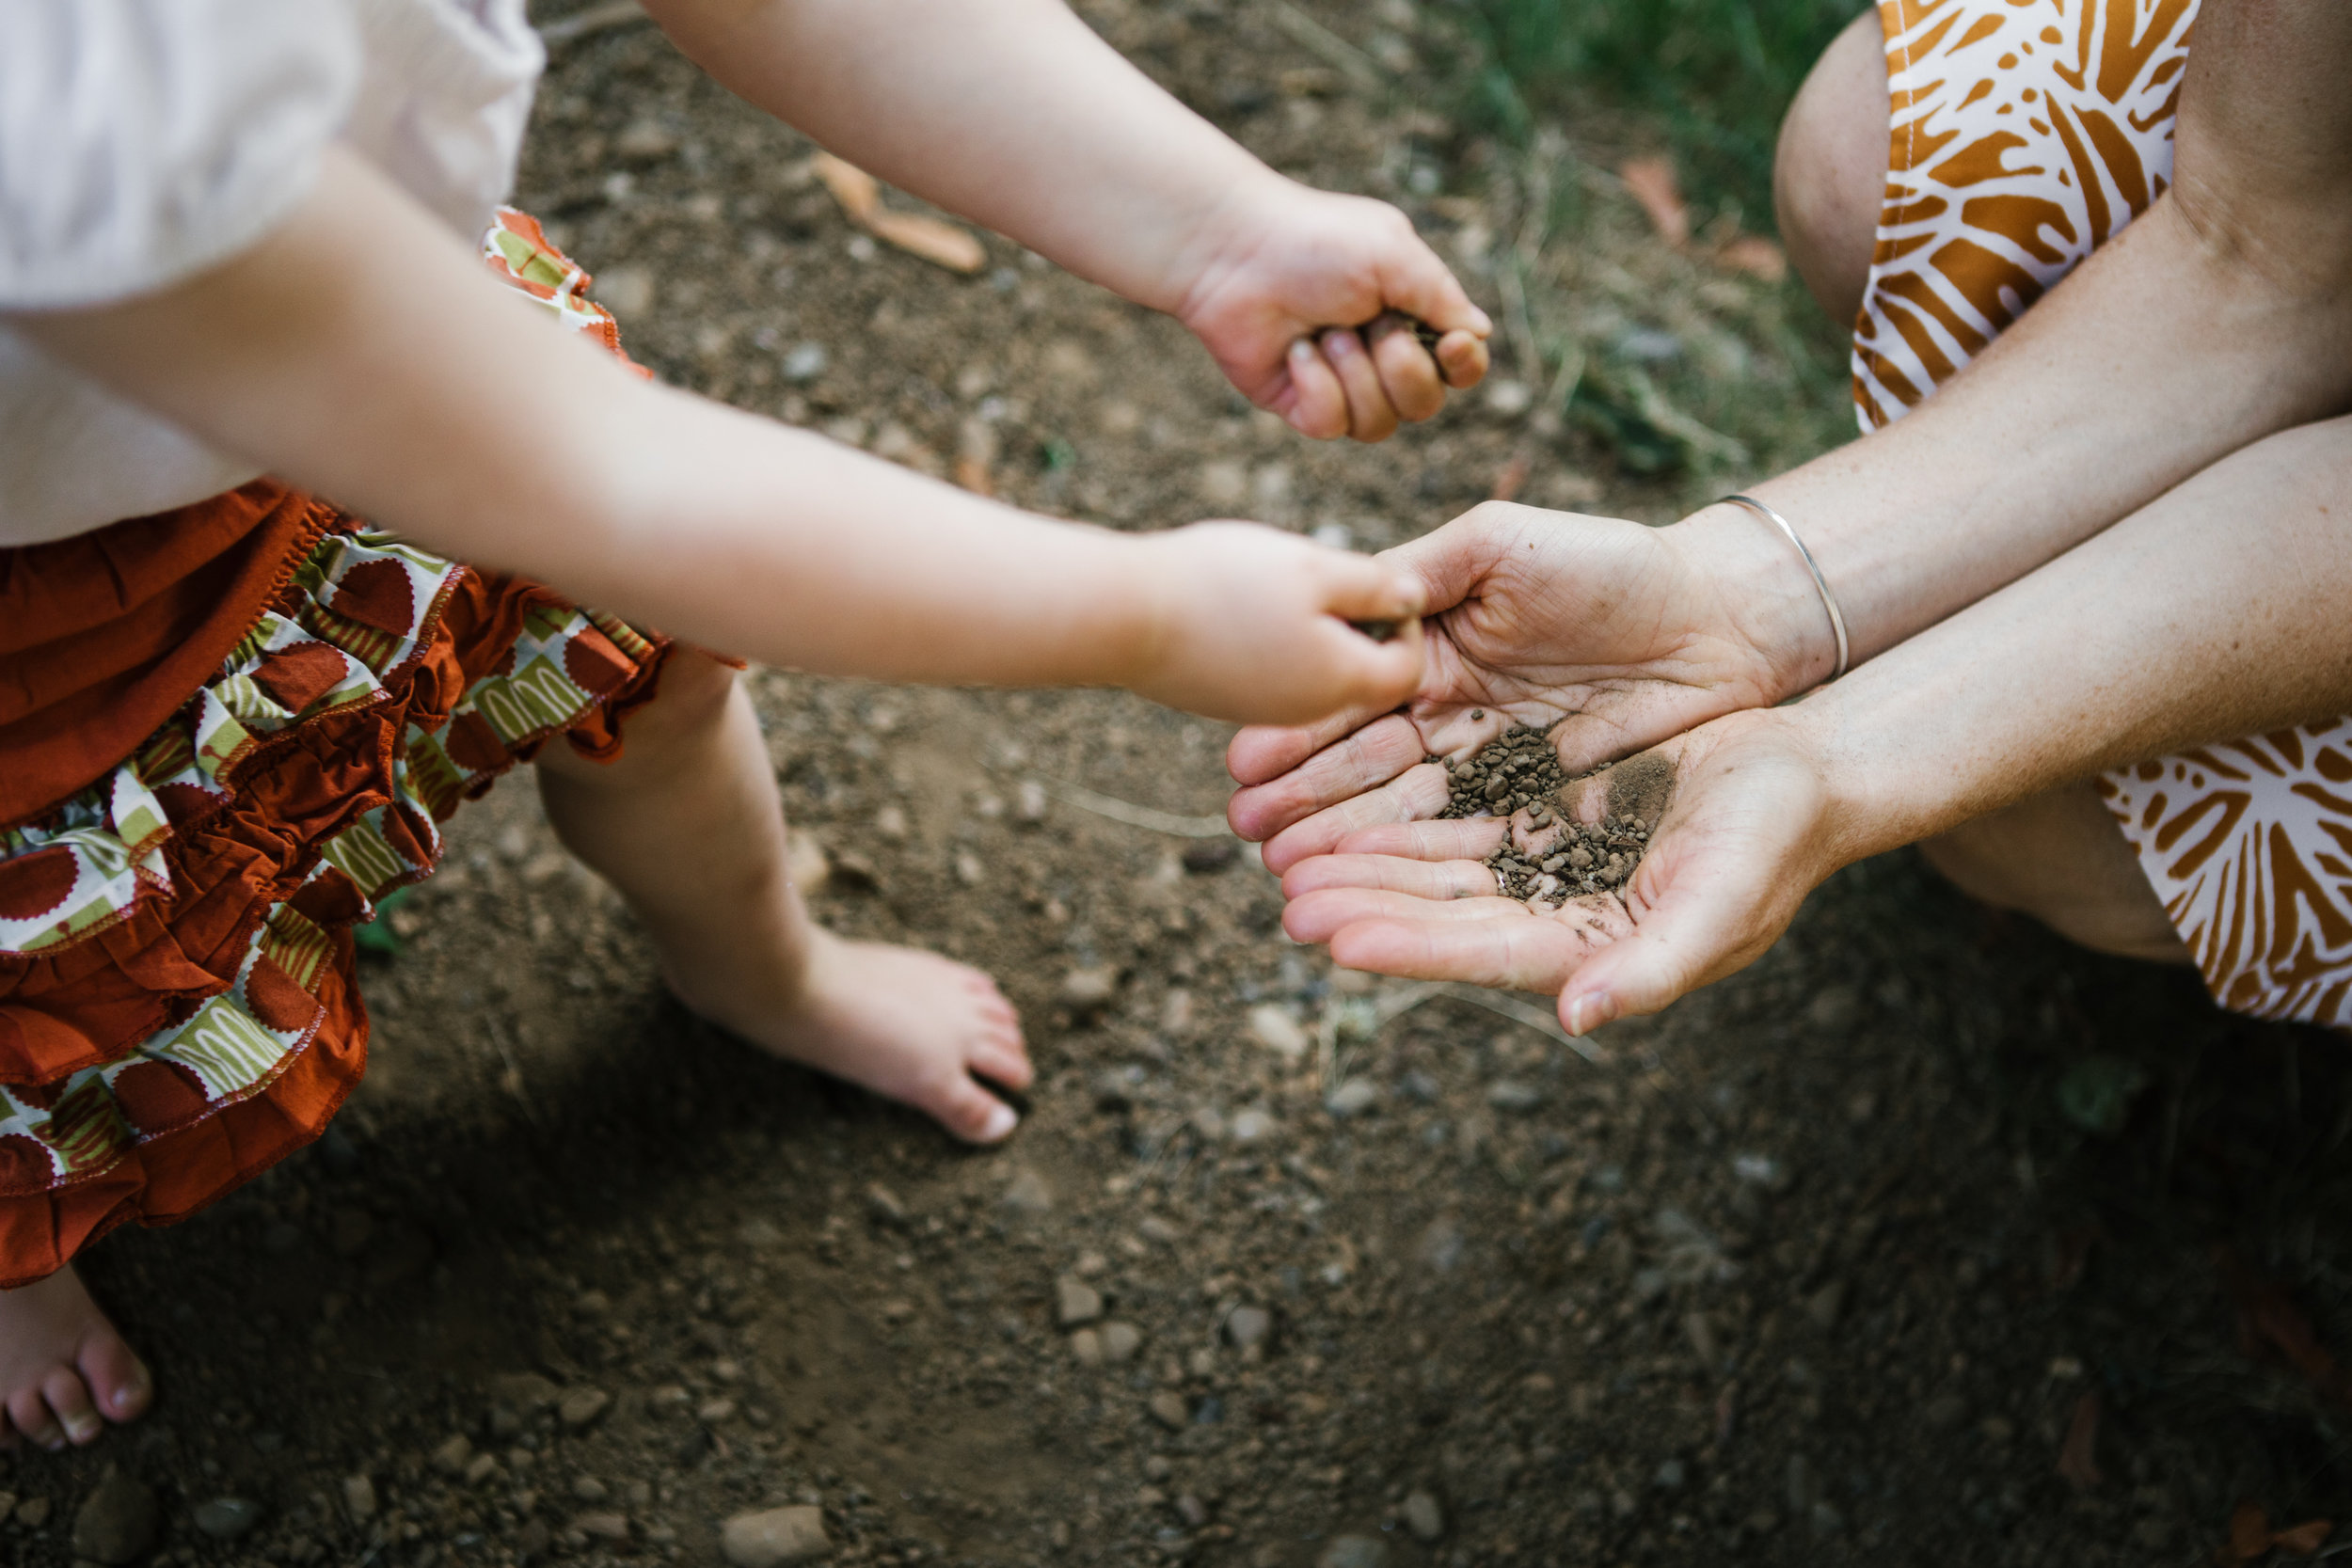 Toddler playing with dirt